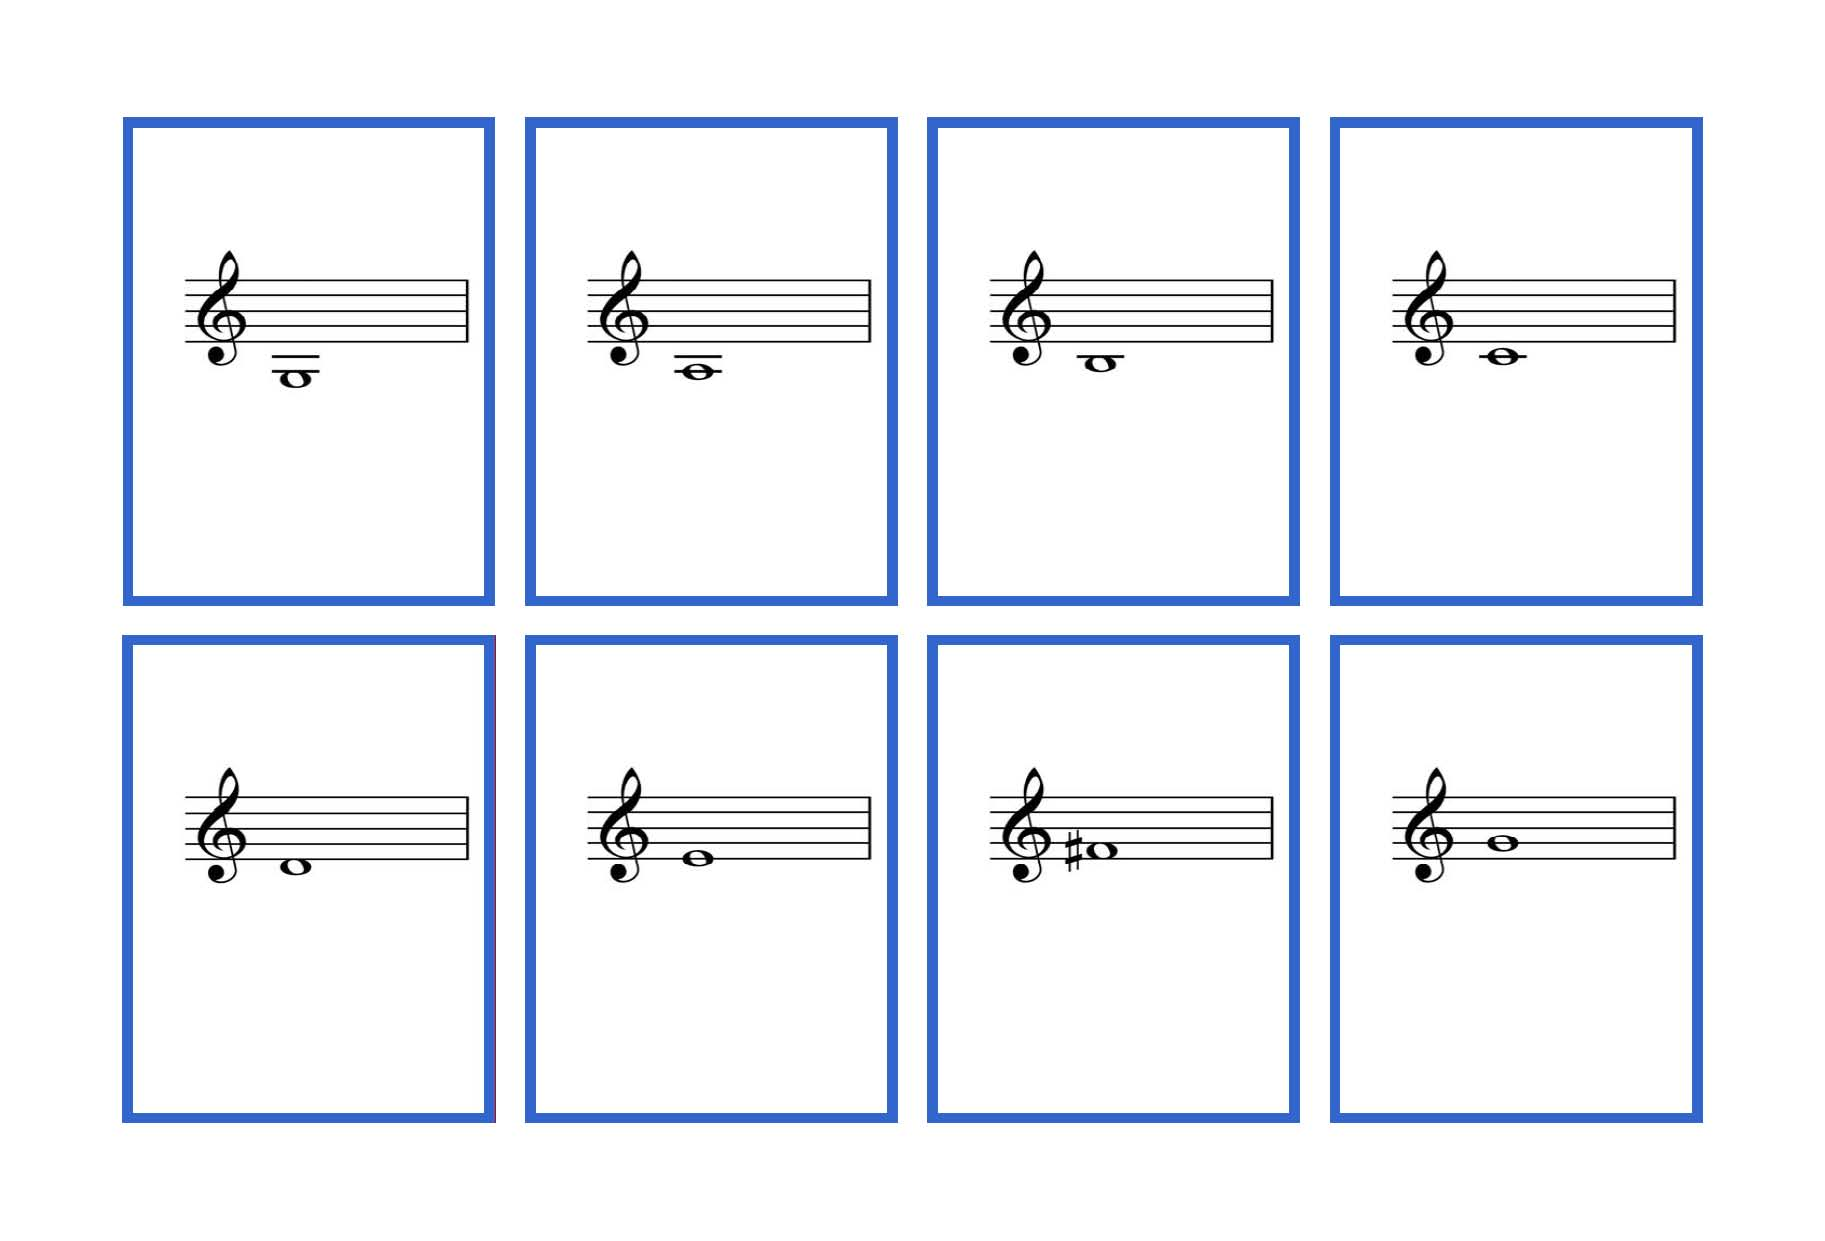 Printables Flash Card For Reading complete set violin flash cards printable denley music printable